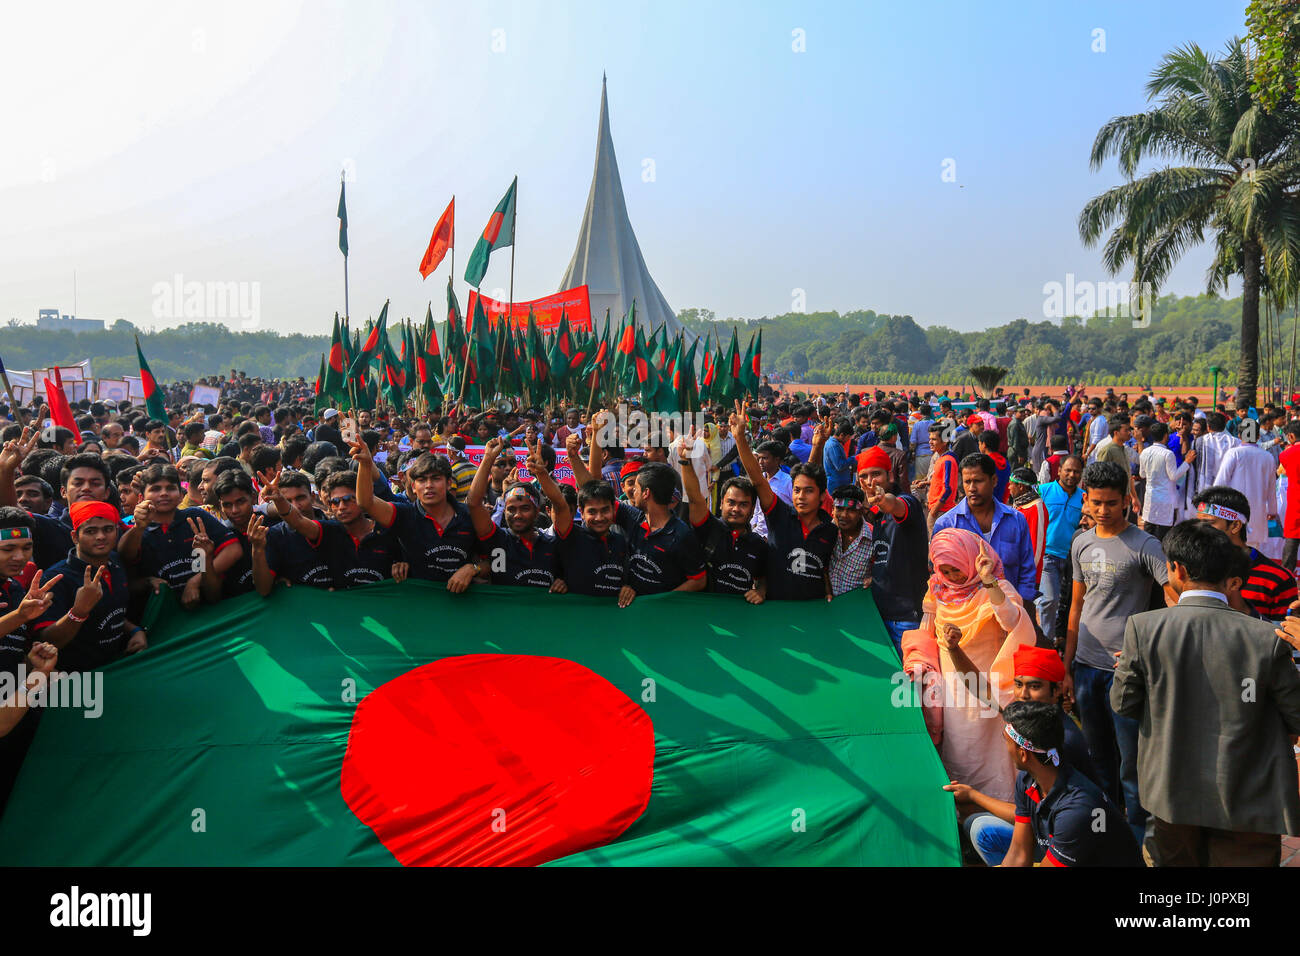 People pay tribute at the National Memorial Tower or Jatiya Smriti Shoudha at Savar on Victory Day, about 20 km Stock Photo